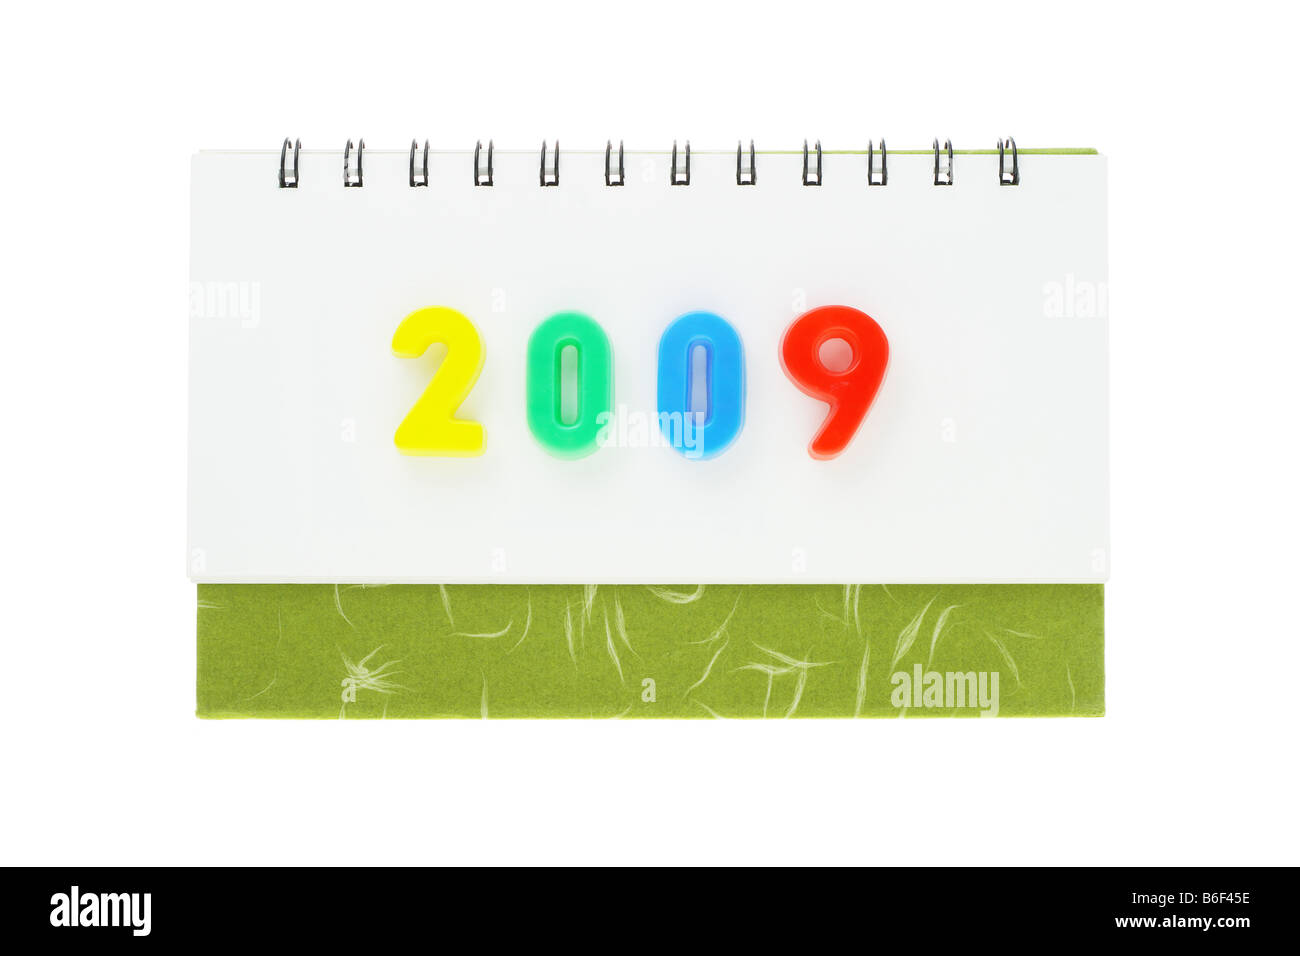 Desktop calendar showing the year 2009 - Stock Image